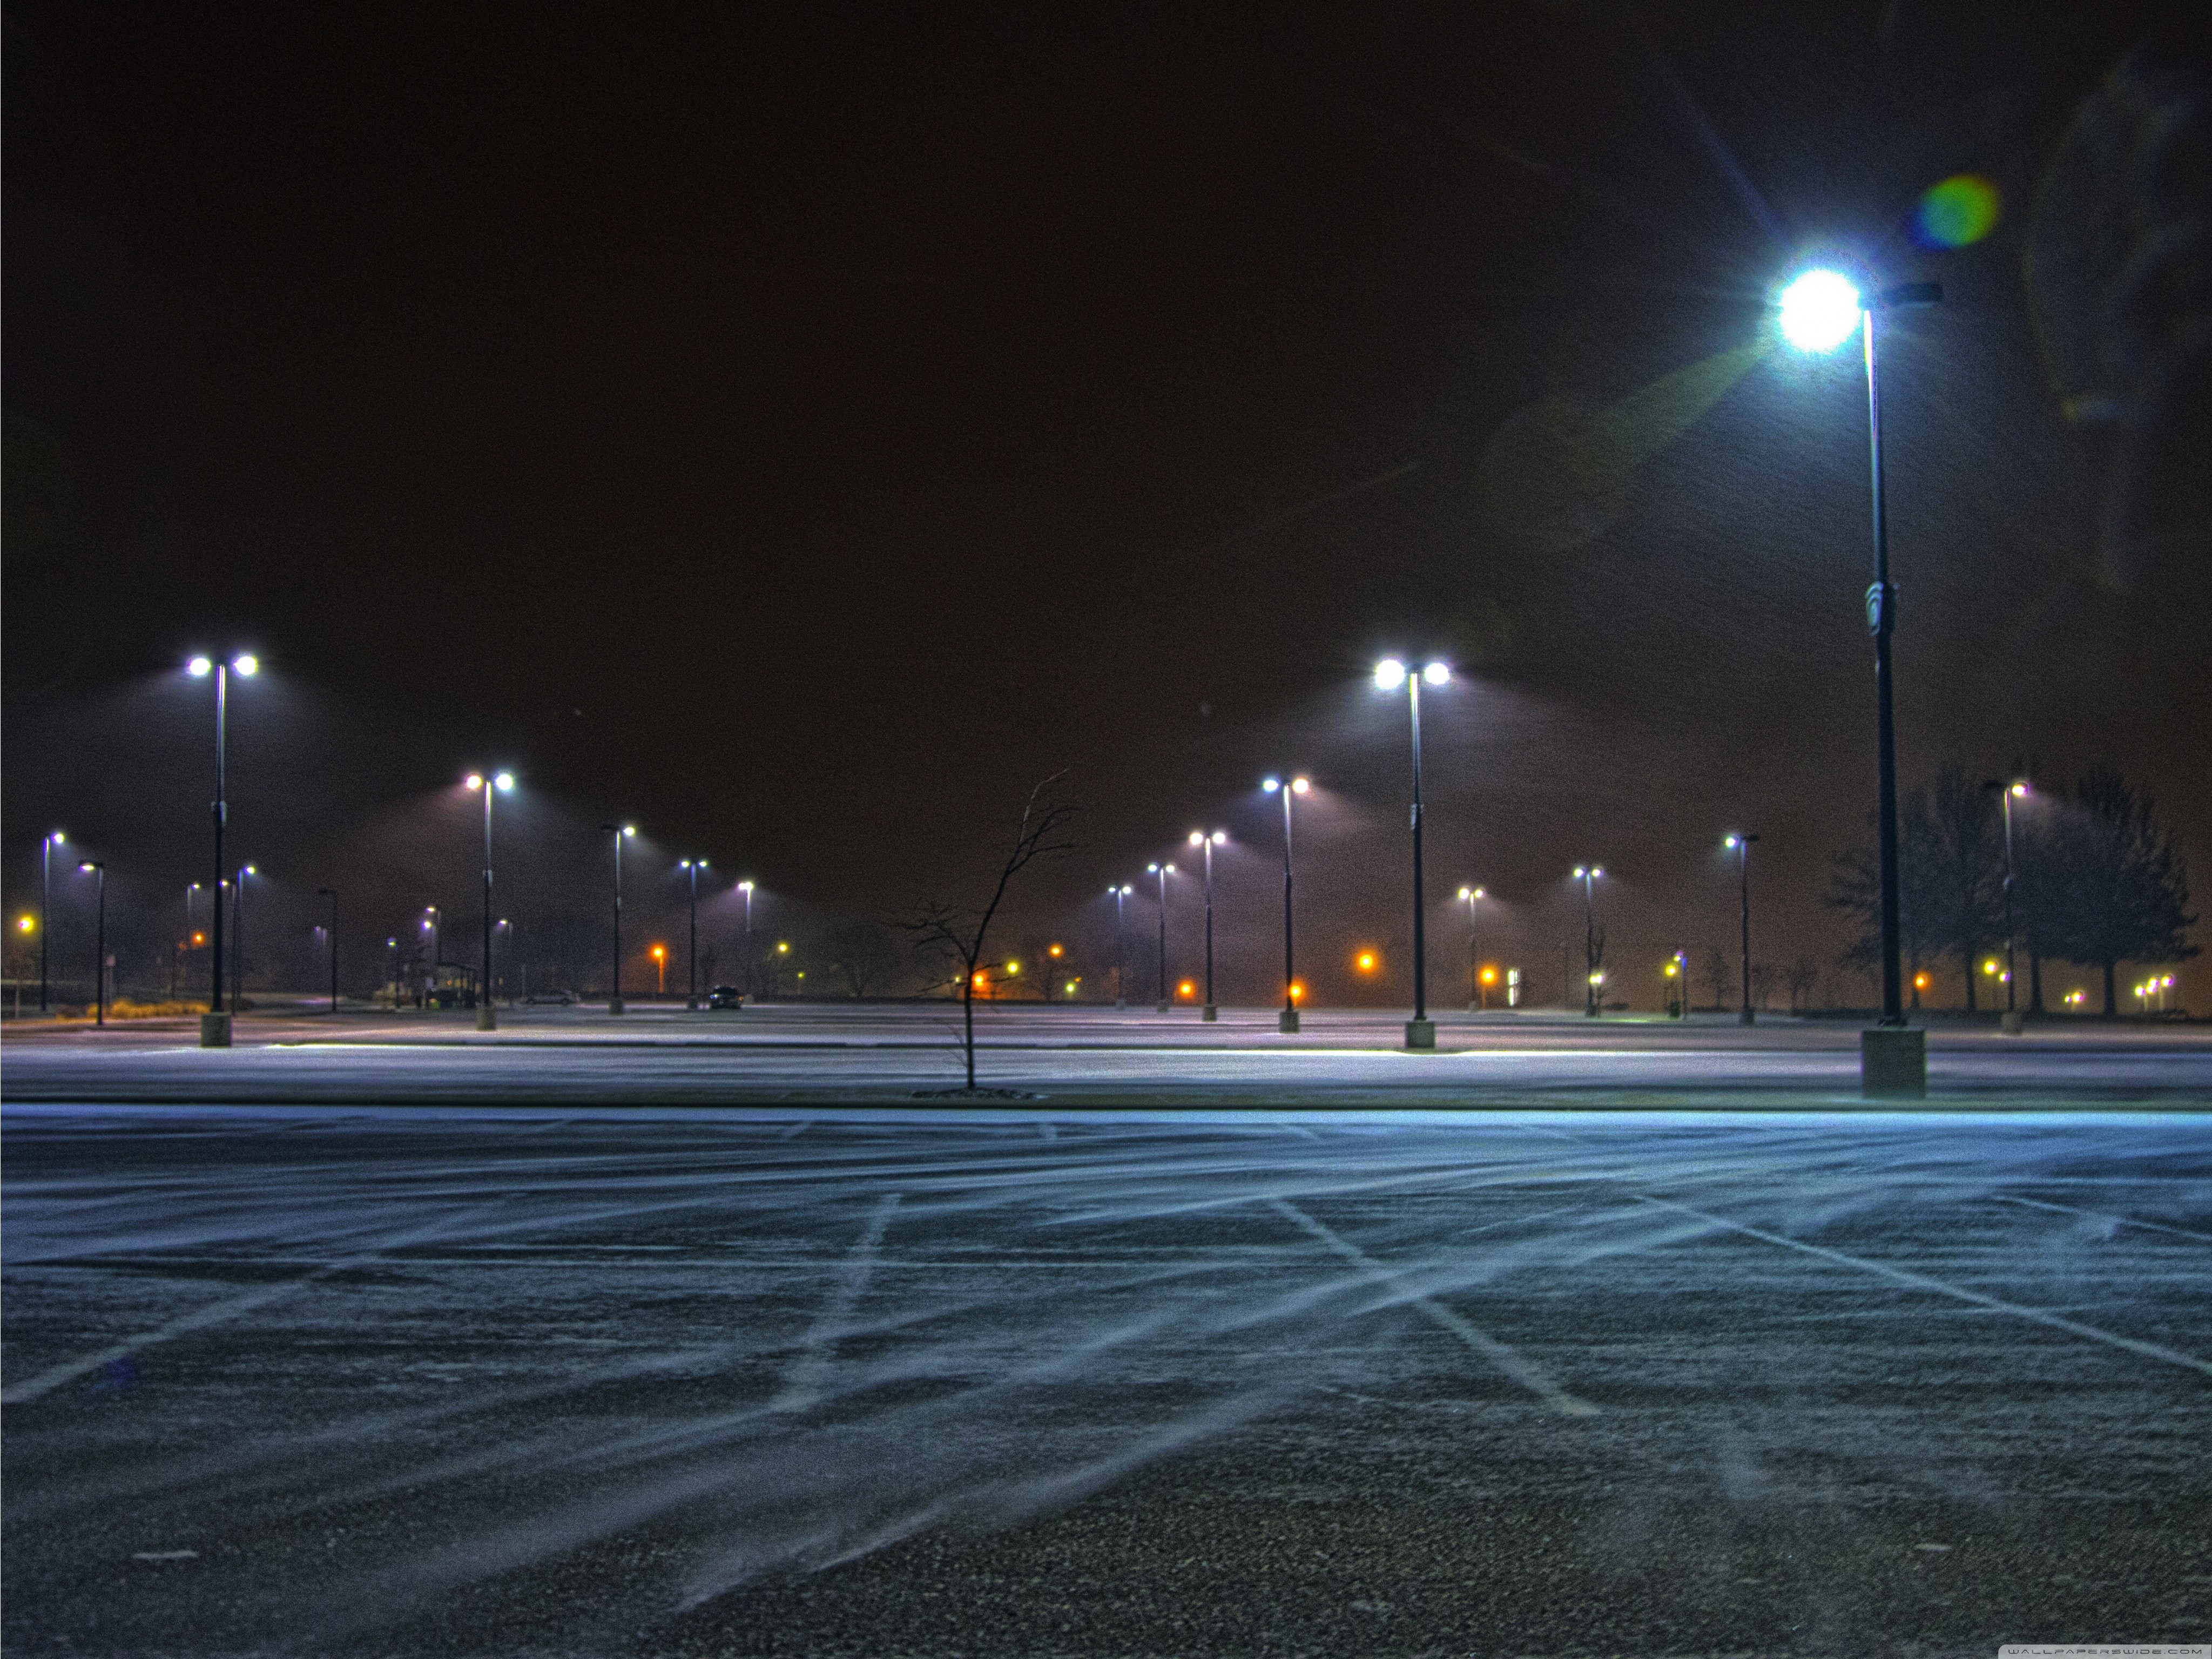 Winds Street Lights Asphalt Parking Lot Wallpaper